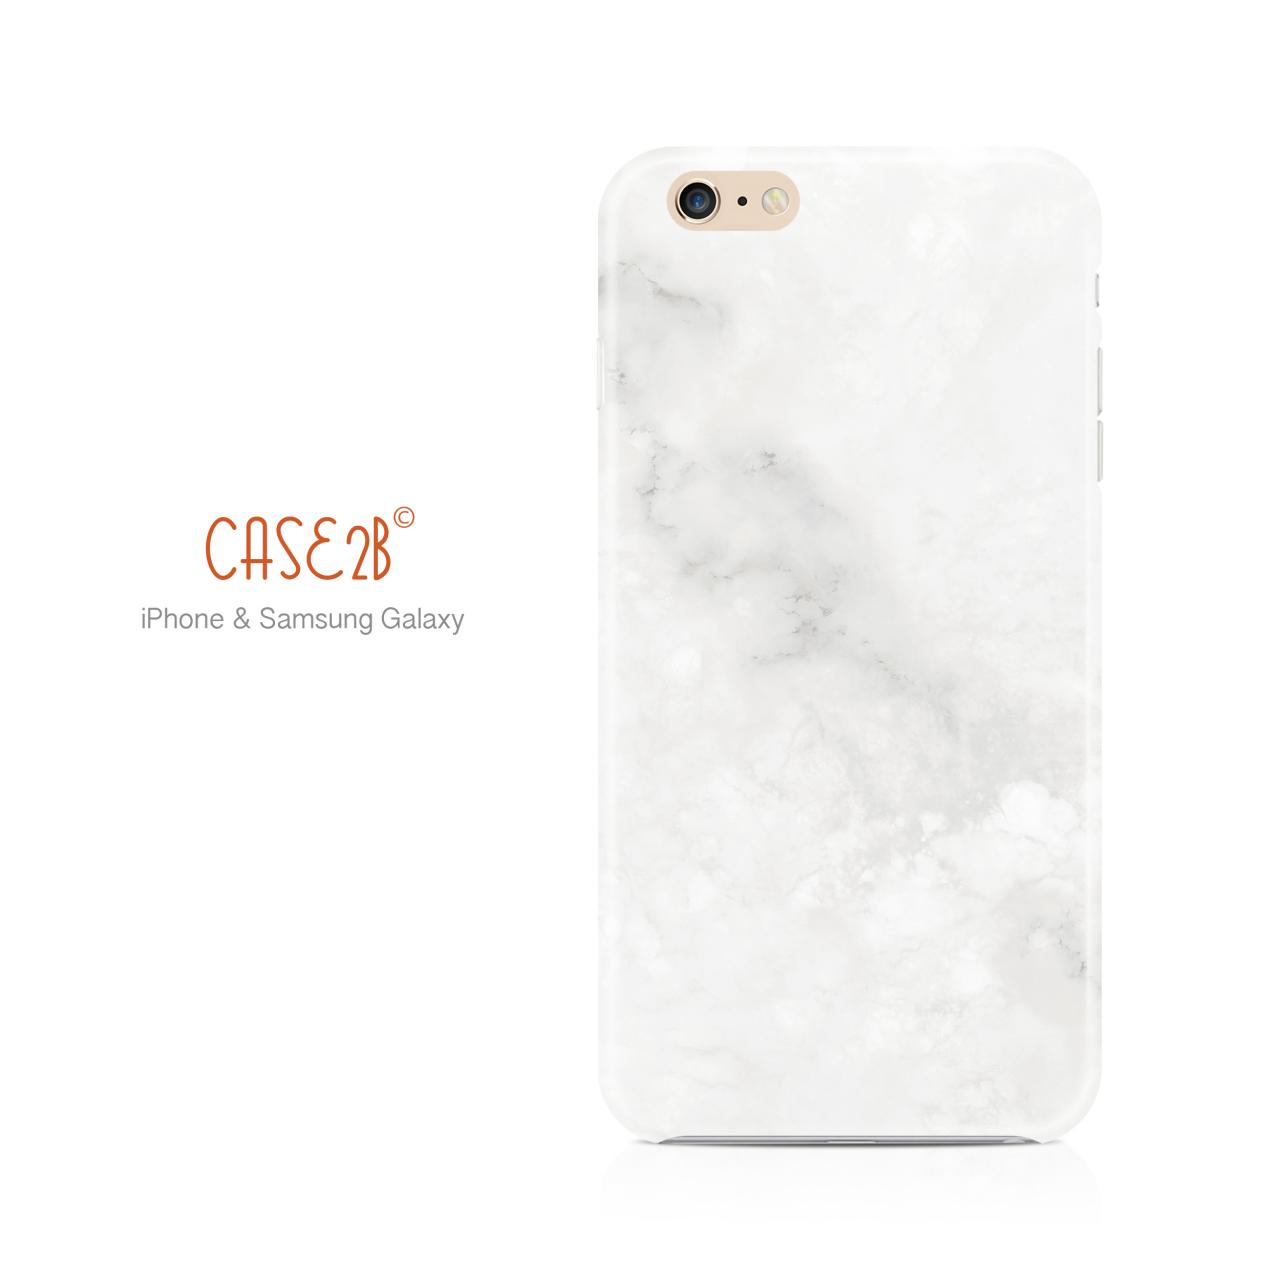 Marble Pattern iPhone 6 Plus iPhone 6 iPhone 5s iPhone 5c iPhone 4s Samsung Galaxy s5 Samsung Galaxy s4 case